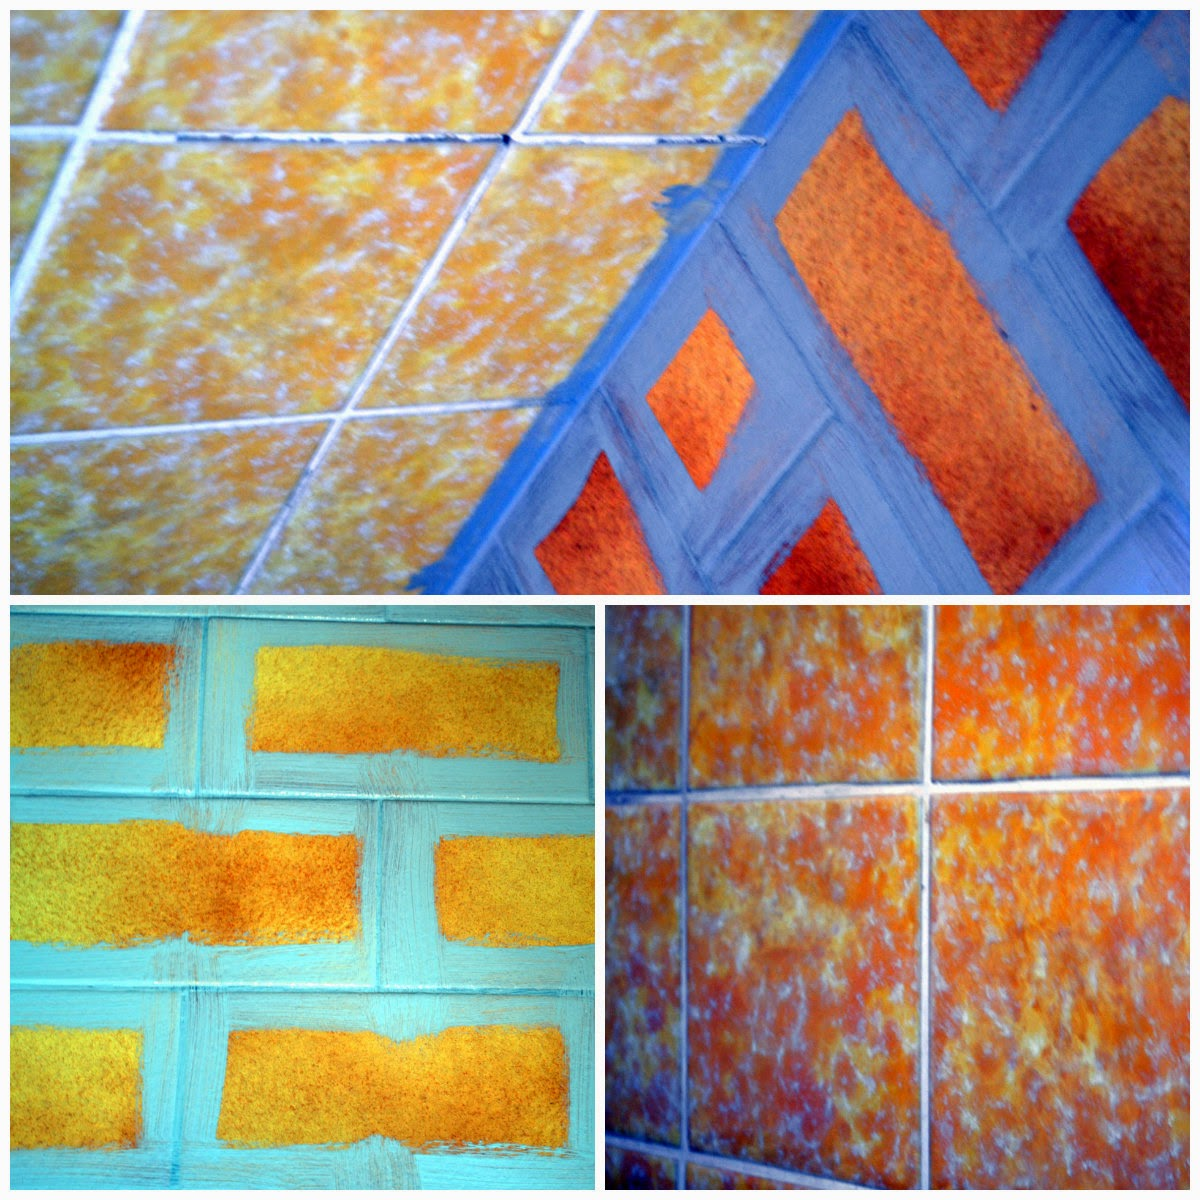 Painting tiles in